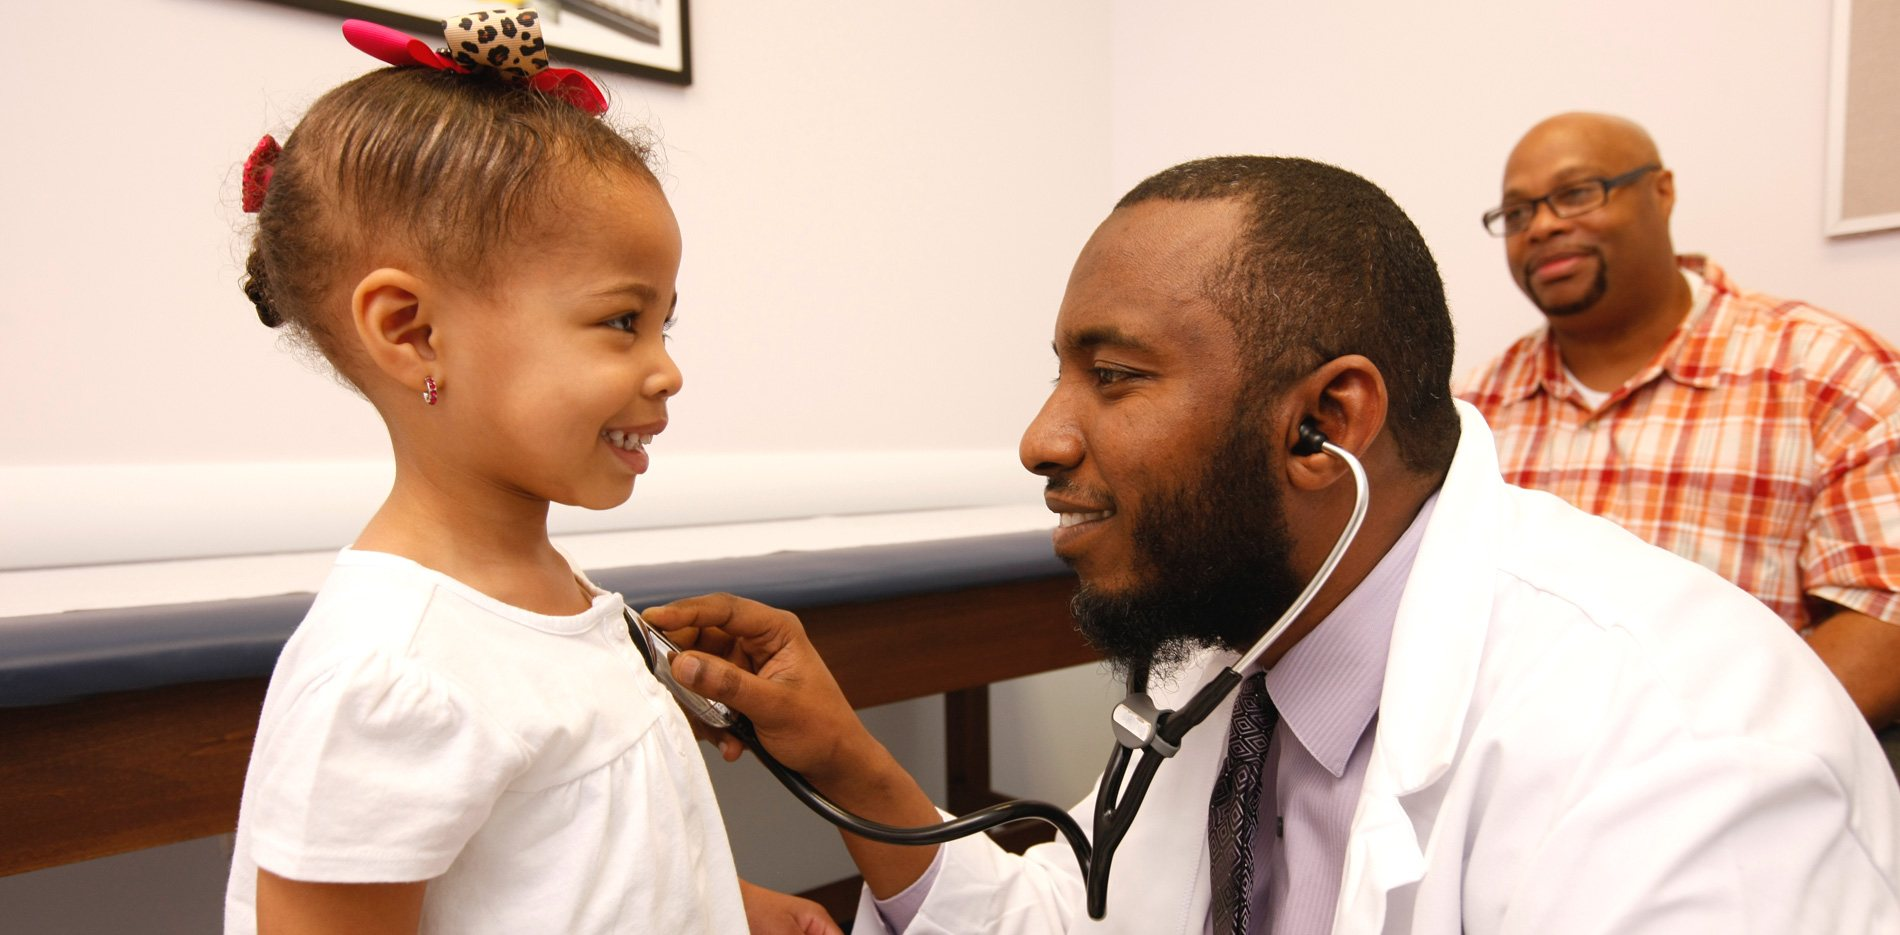 Doctor with young girl and father